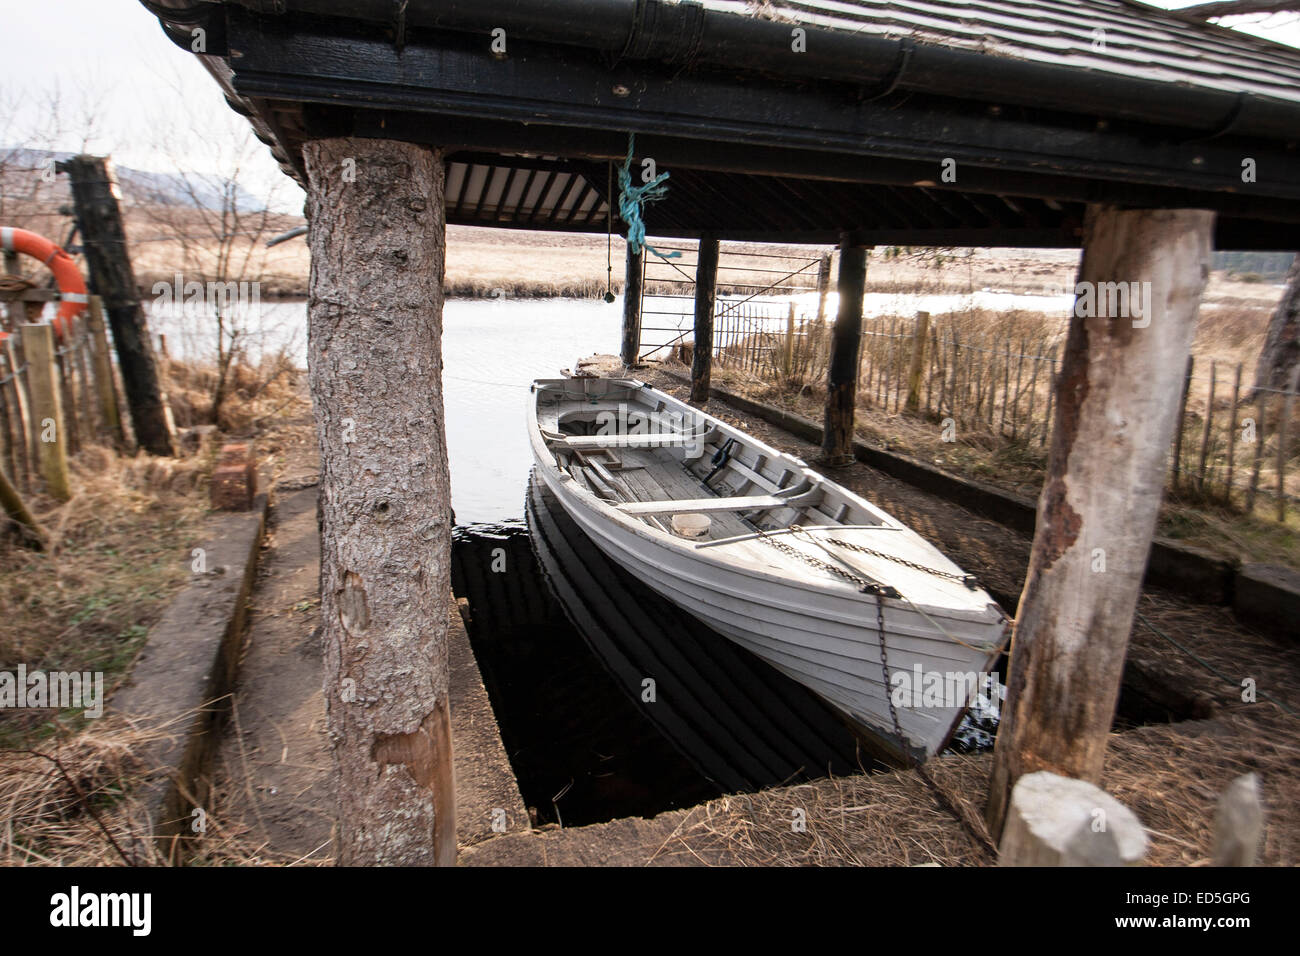 Boat in a boathouse at Glenveigh National Park, Co. Donegal, Ireland - Stock Image